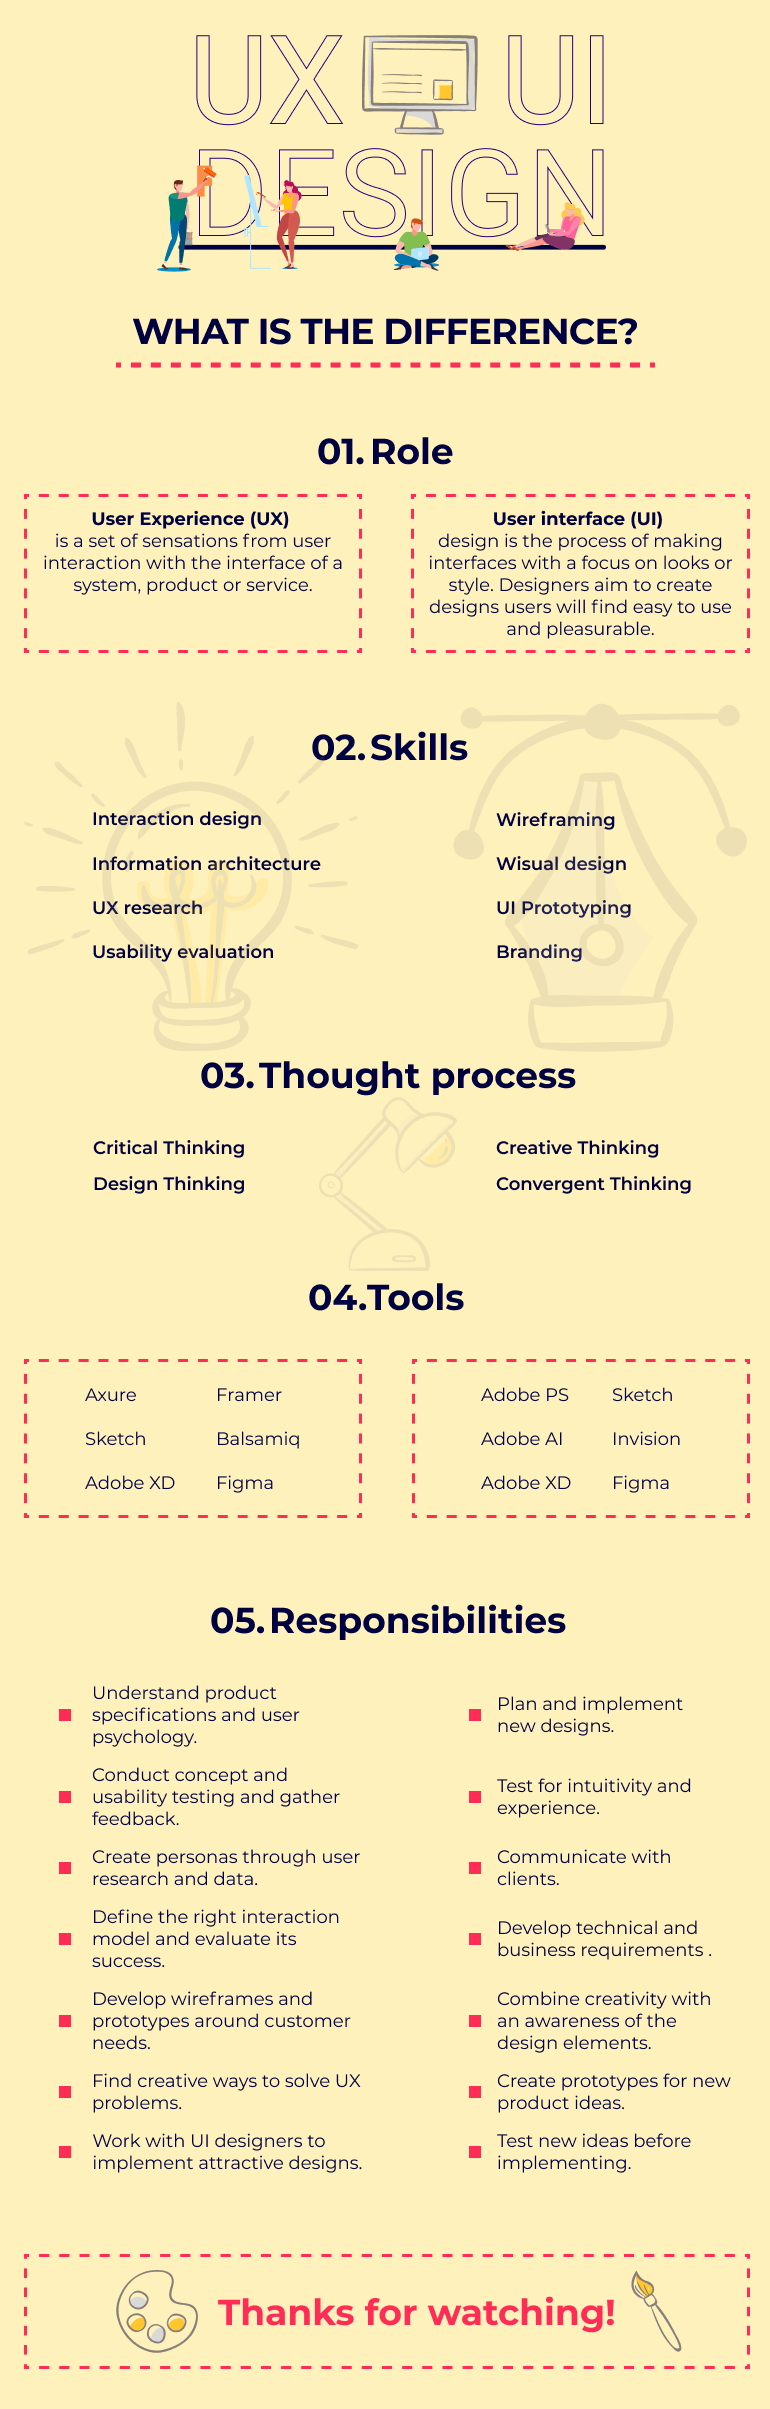 UX vs UI infographic. What is UX Design? What is UI Design? And what's the difference between UX and UI Design in an one-screen infographic.